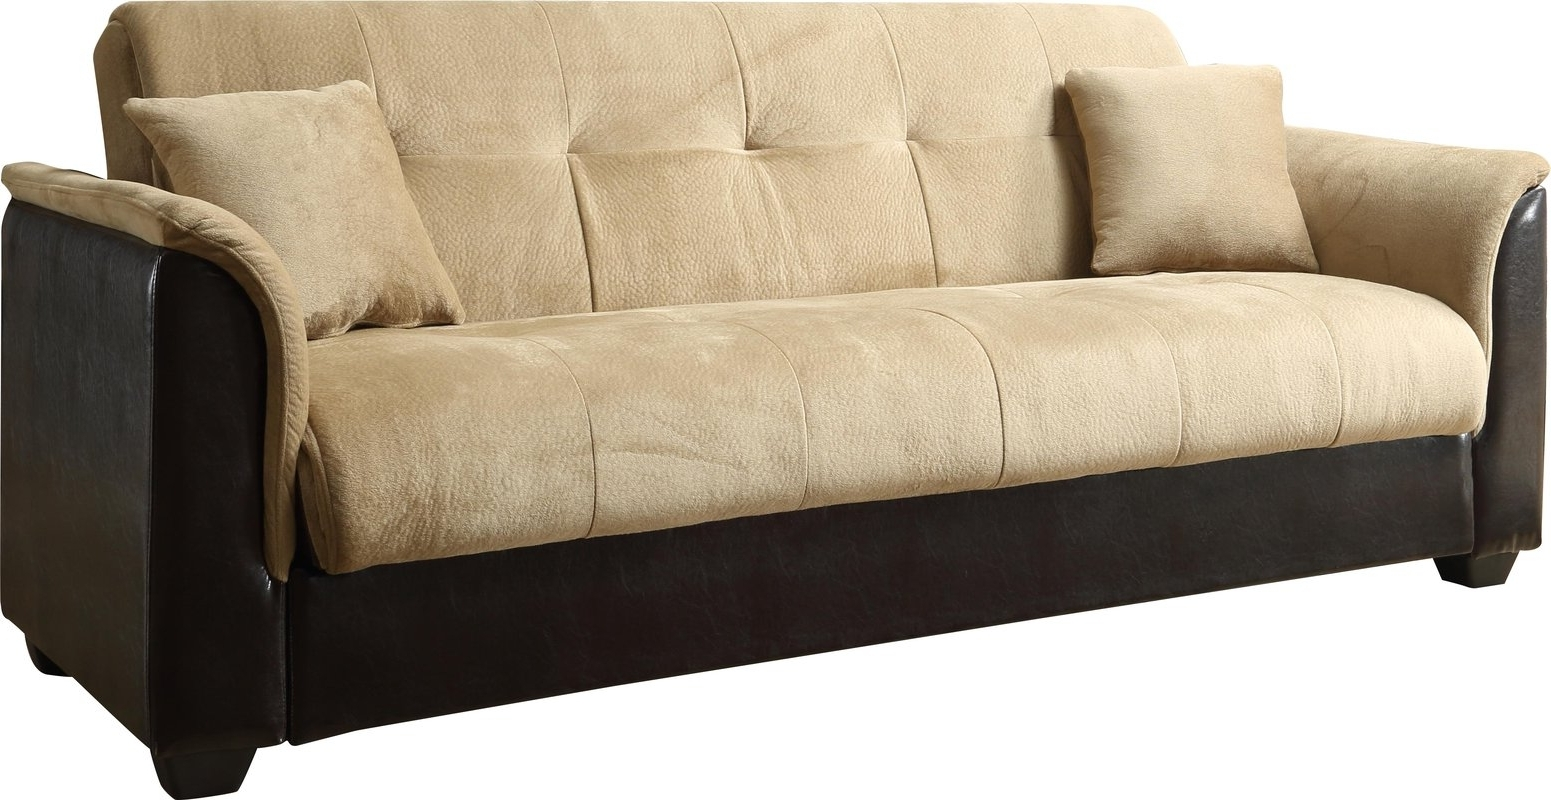 Wayfair For Convertible Sofas (View 5 of 20)